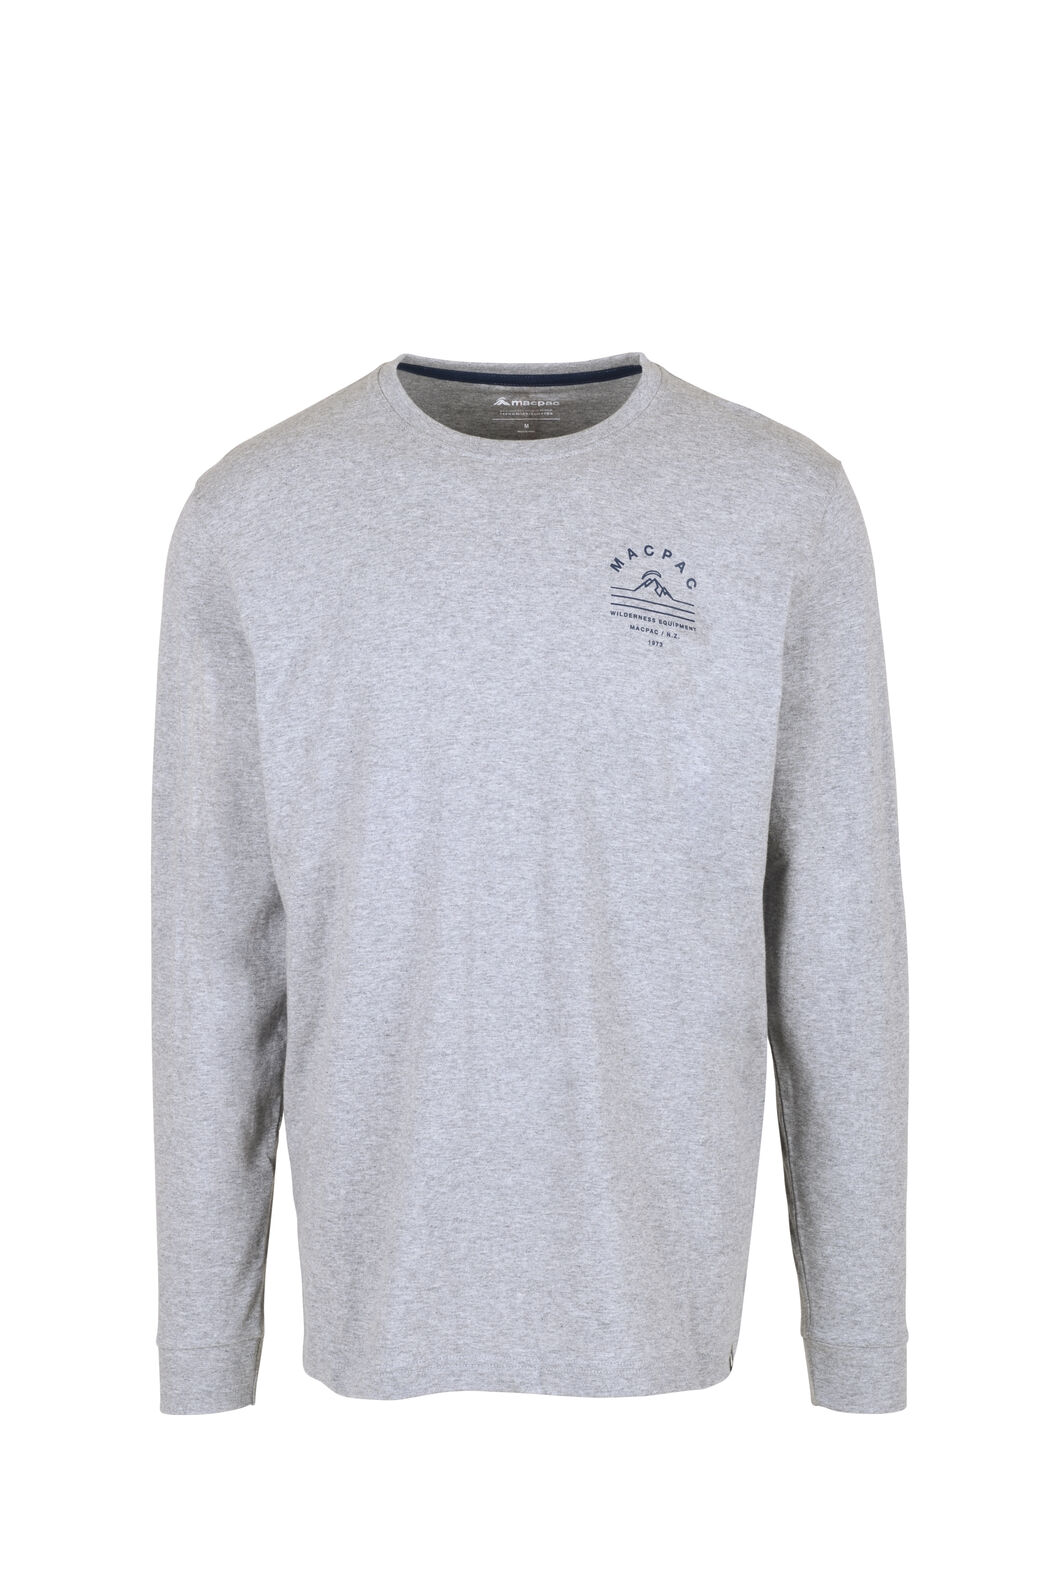 Macpac Alps Fairtrade Organic Cotton Long Sleeve Tee — Men's, Grey Marle/Mood Indigo, hi-res